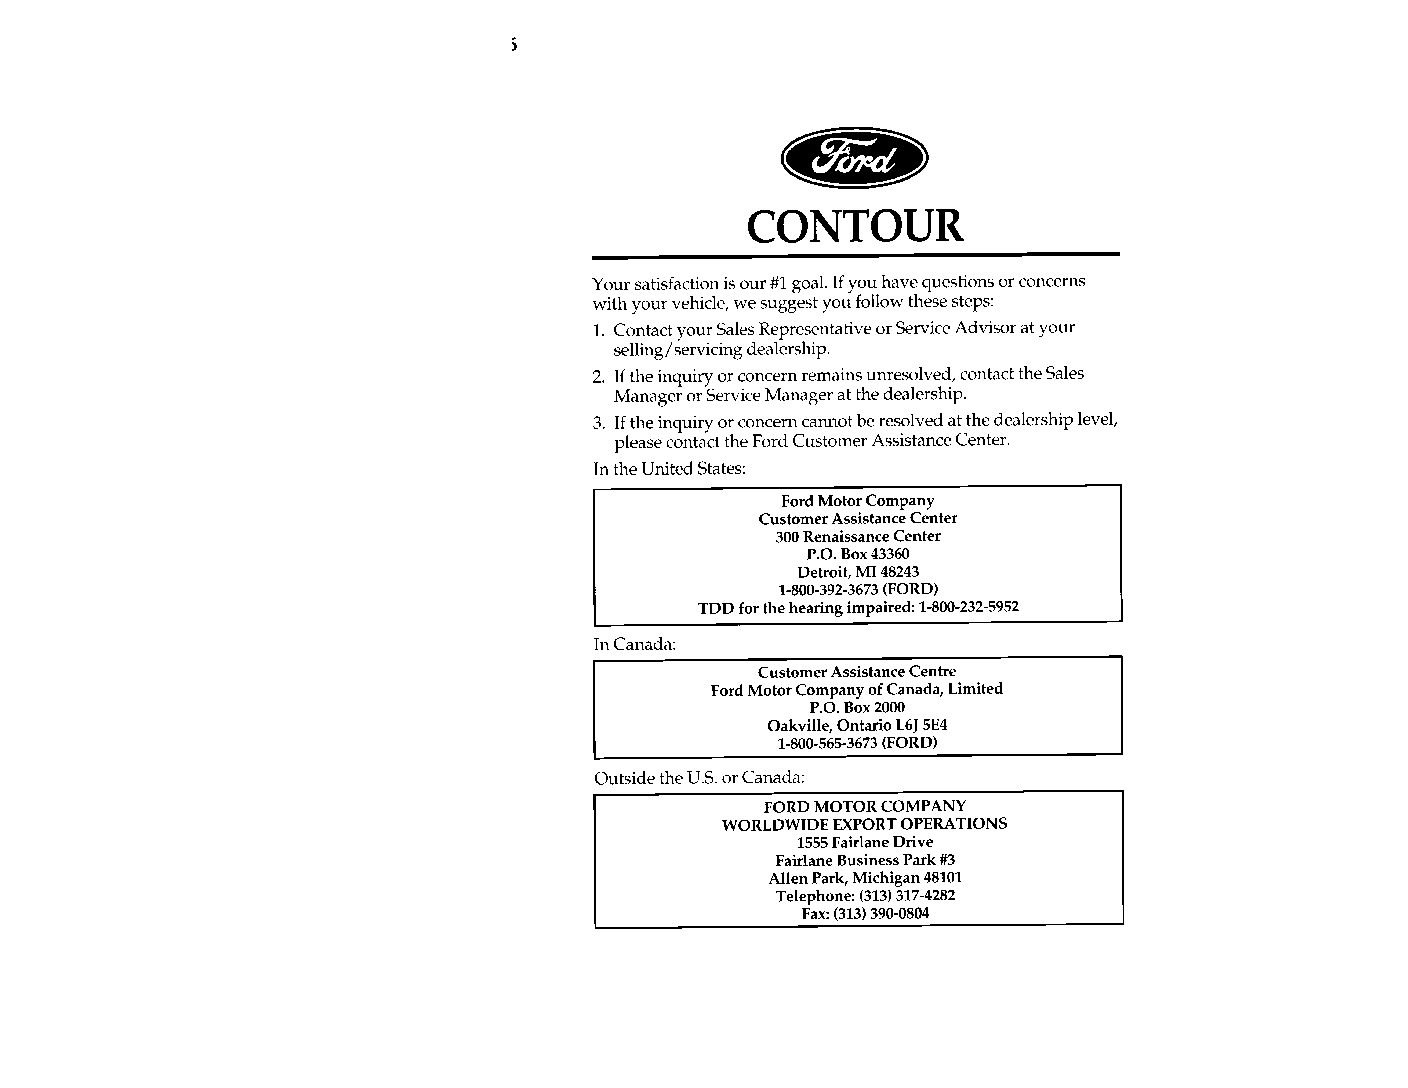 1996 ford contour service manual various owner manual guide u2022 rh lovingme1st com 2011 Ford Taurus Owner Manual 1999 Ford Taurus